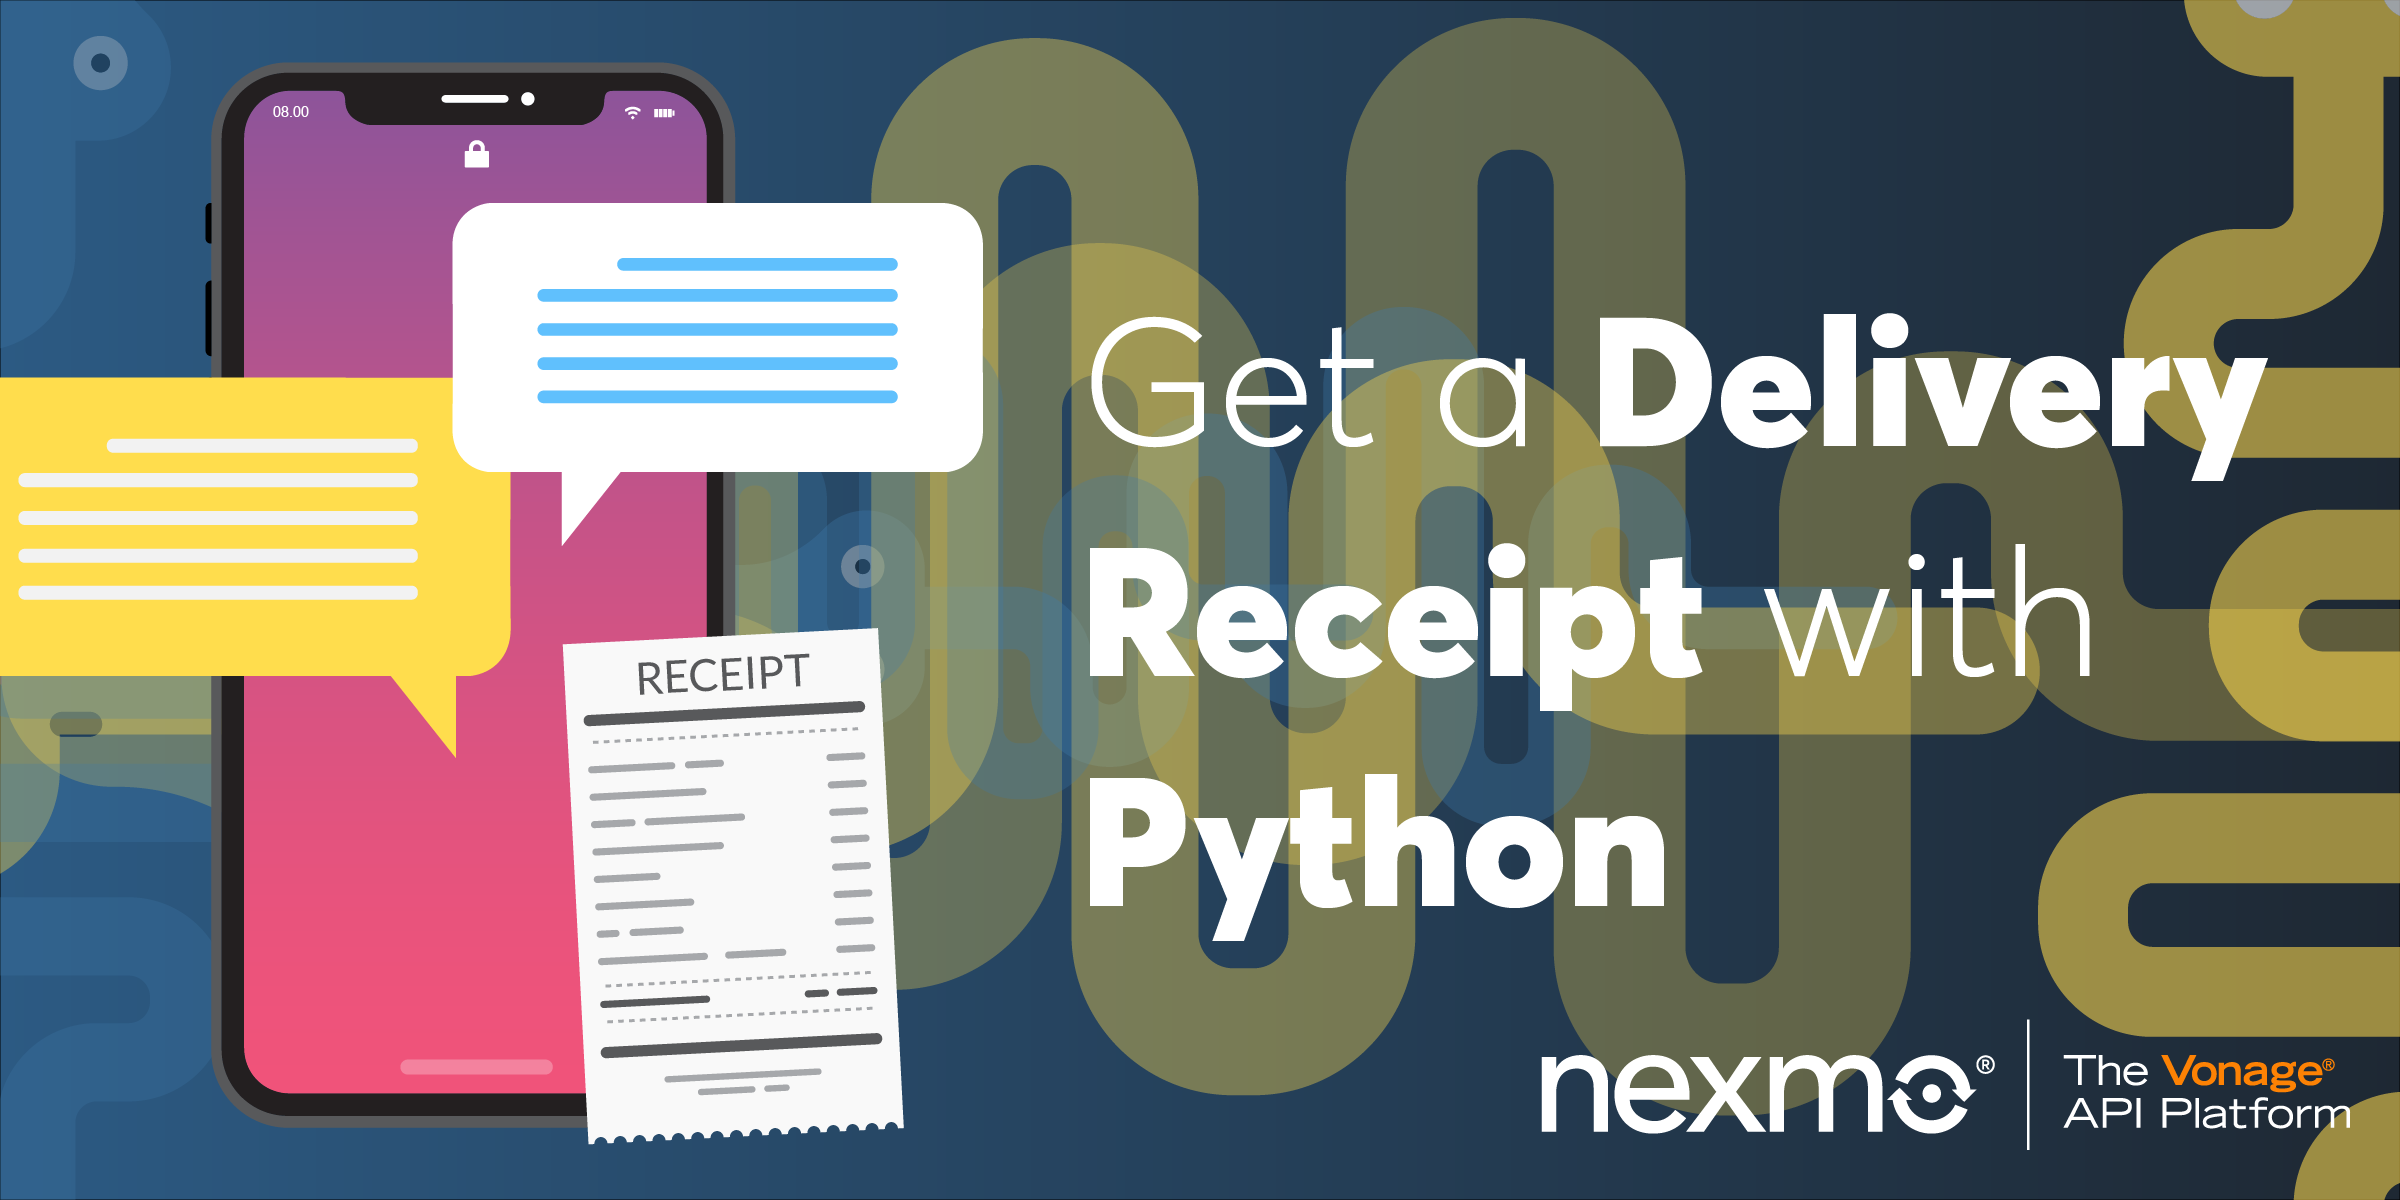 Get a delivery receipt with Python